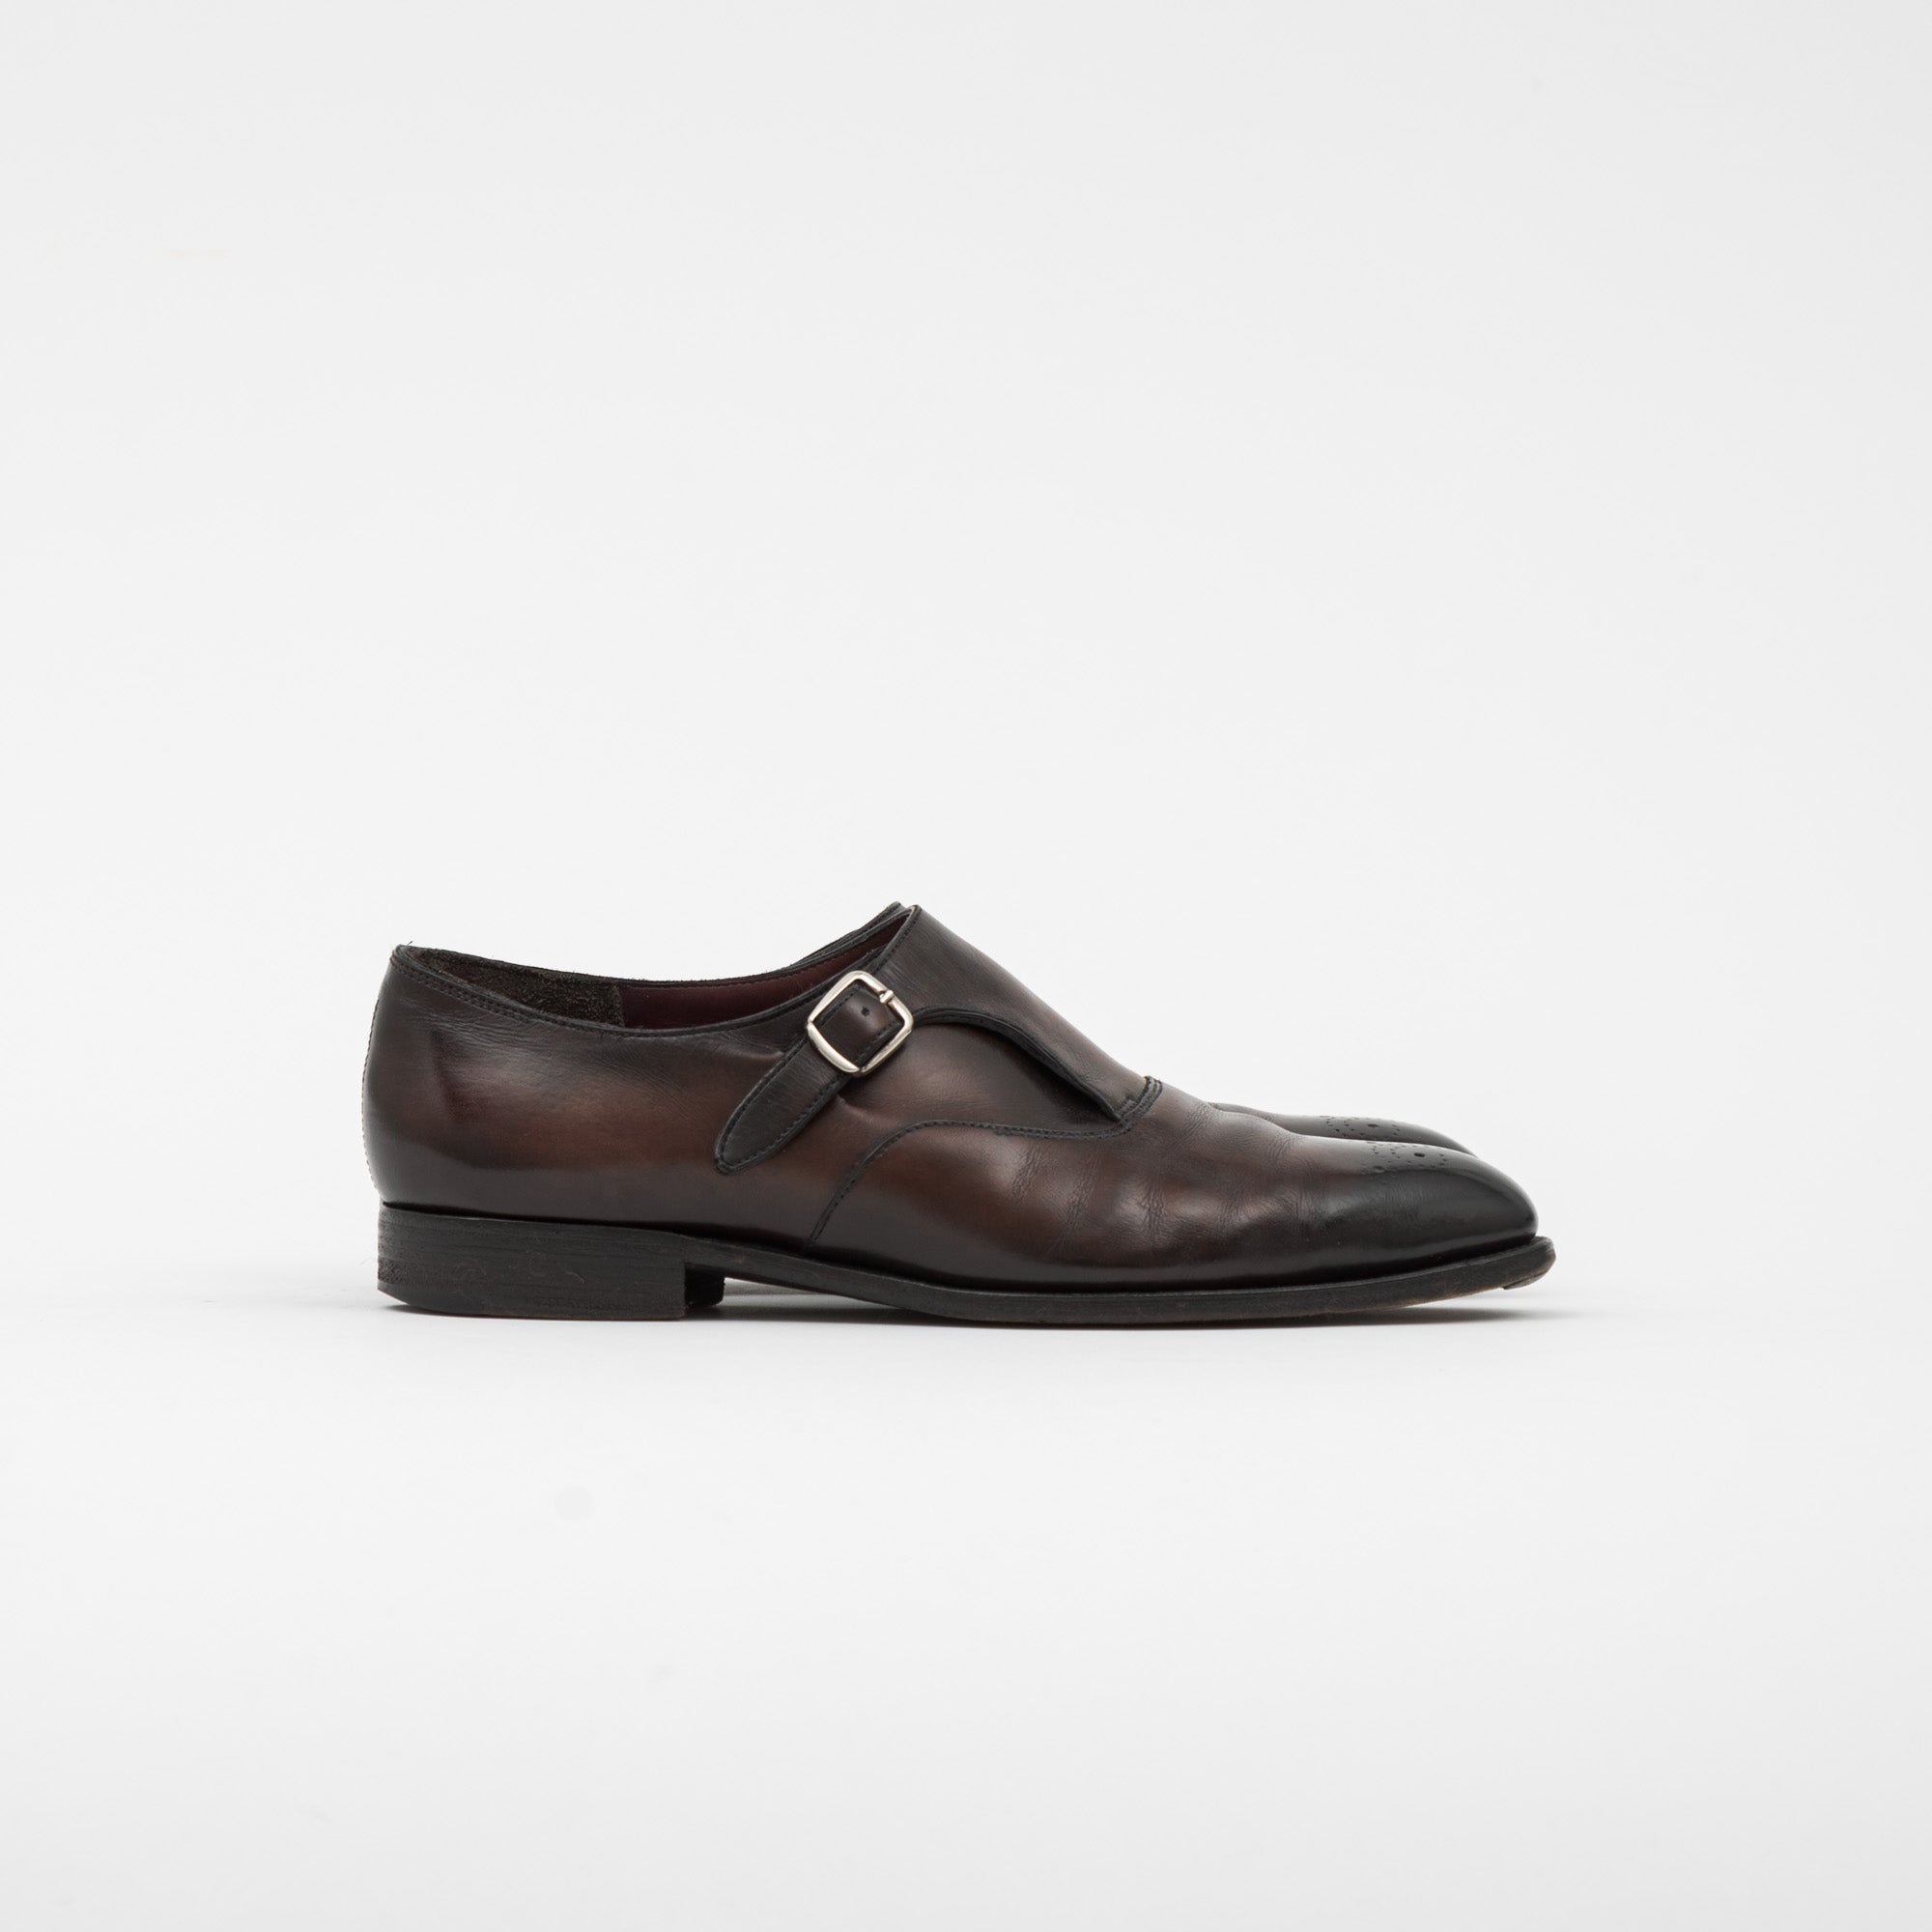 Edward Green Utah Leather Mercer Shoe